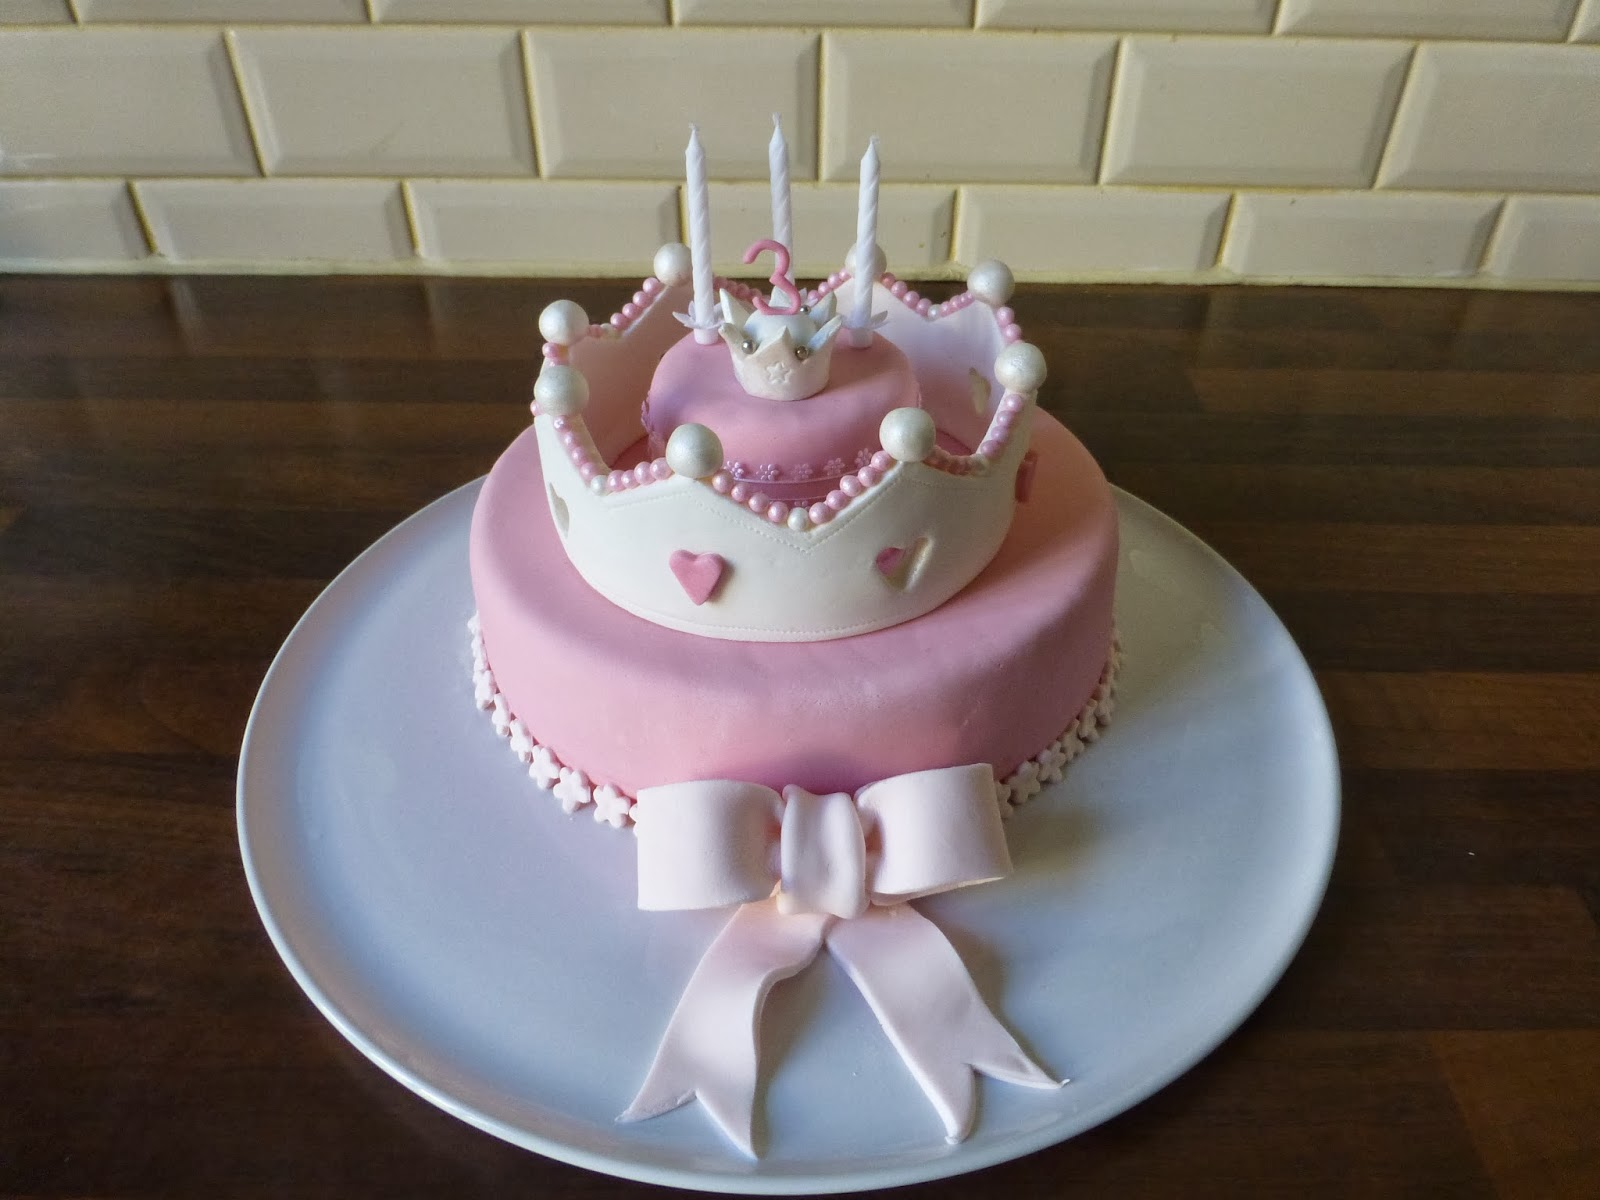 Crown with Pink Fondant Cakes